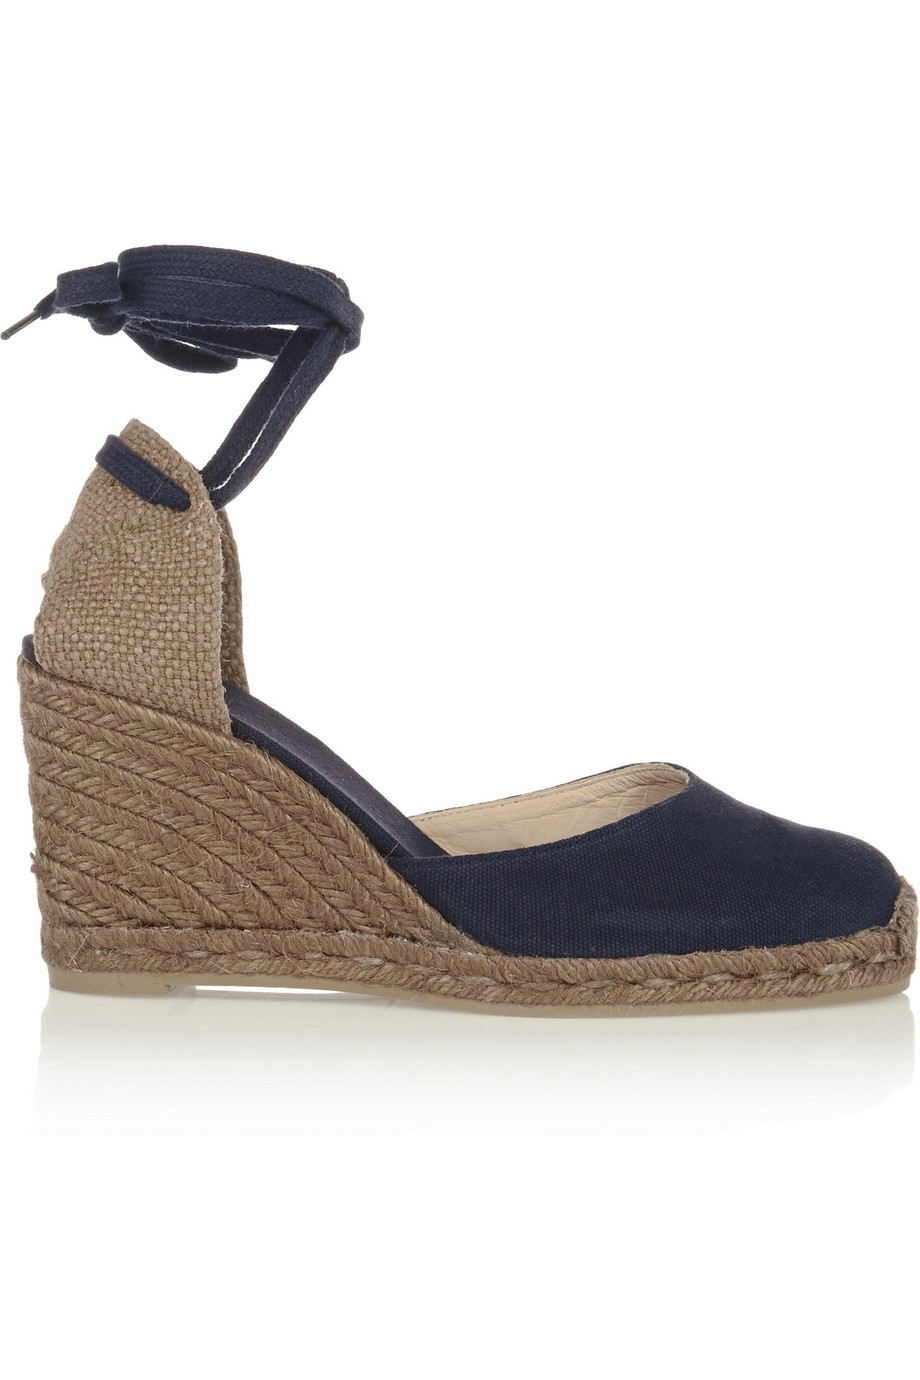 Castañer Carina Canvas Wedge Espadrilles, Navy, Women's US Size: 4.5, Size: 35